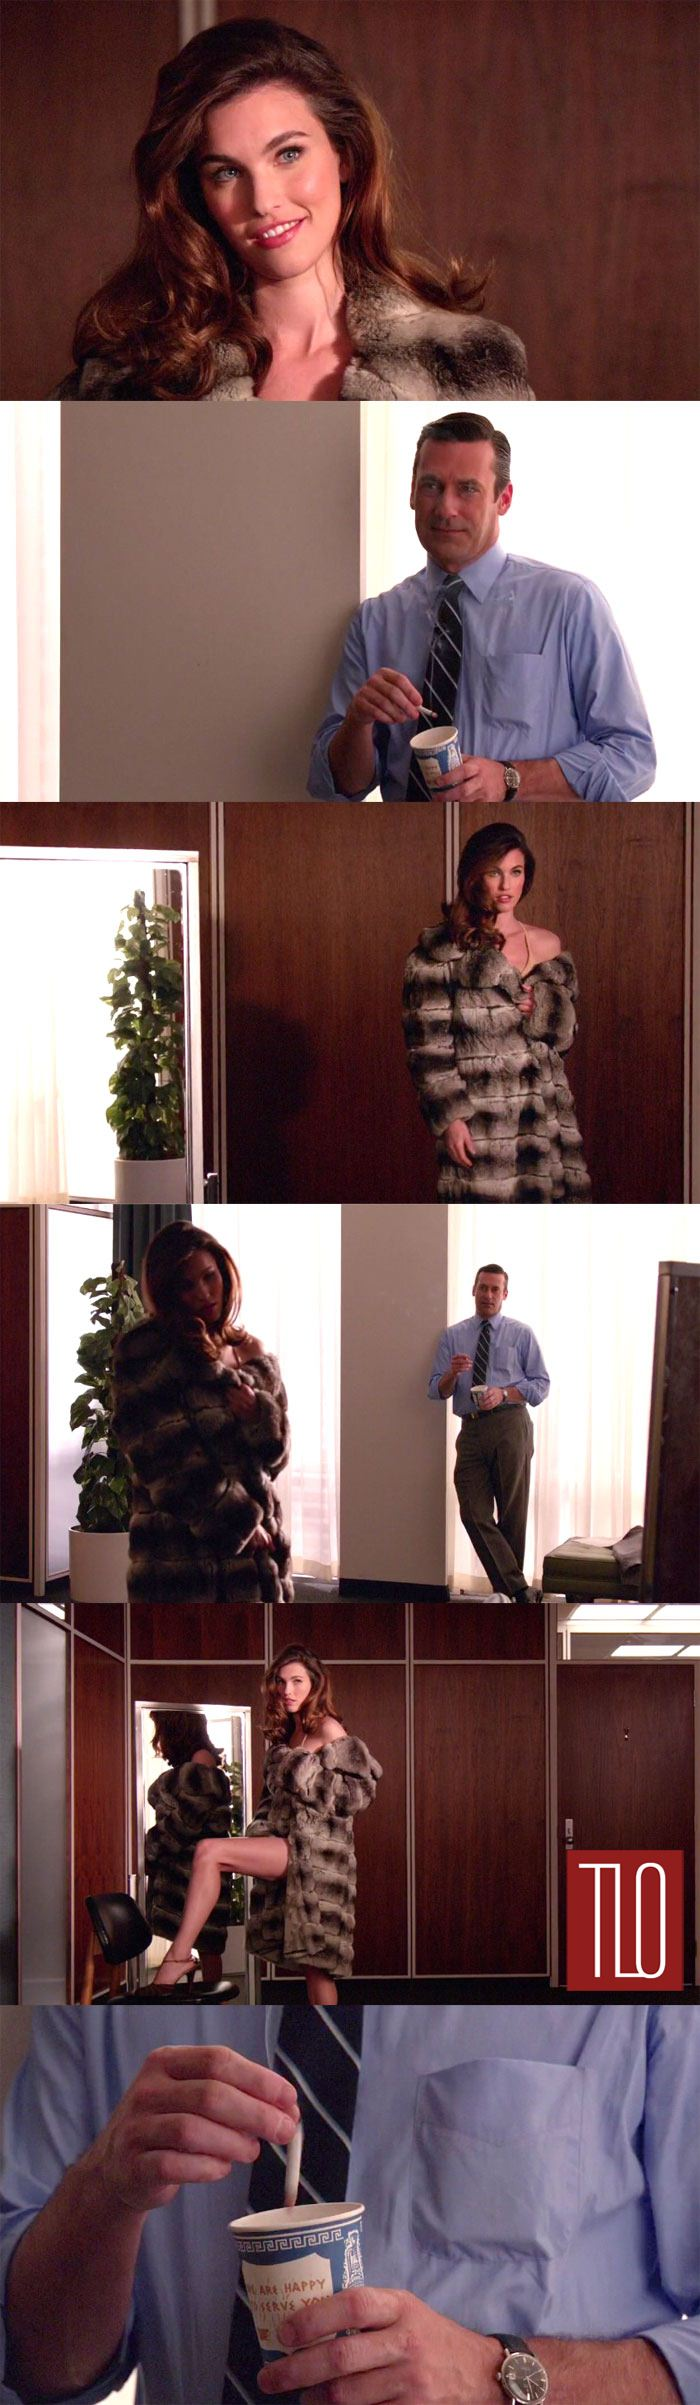 Mad-Men-Television-Series-Season-7-Episode-8-Severance-Mad-Style-Costume-Analysis-Tom-Lorenzo-Site-TLO (1)